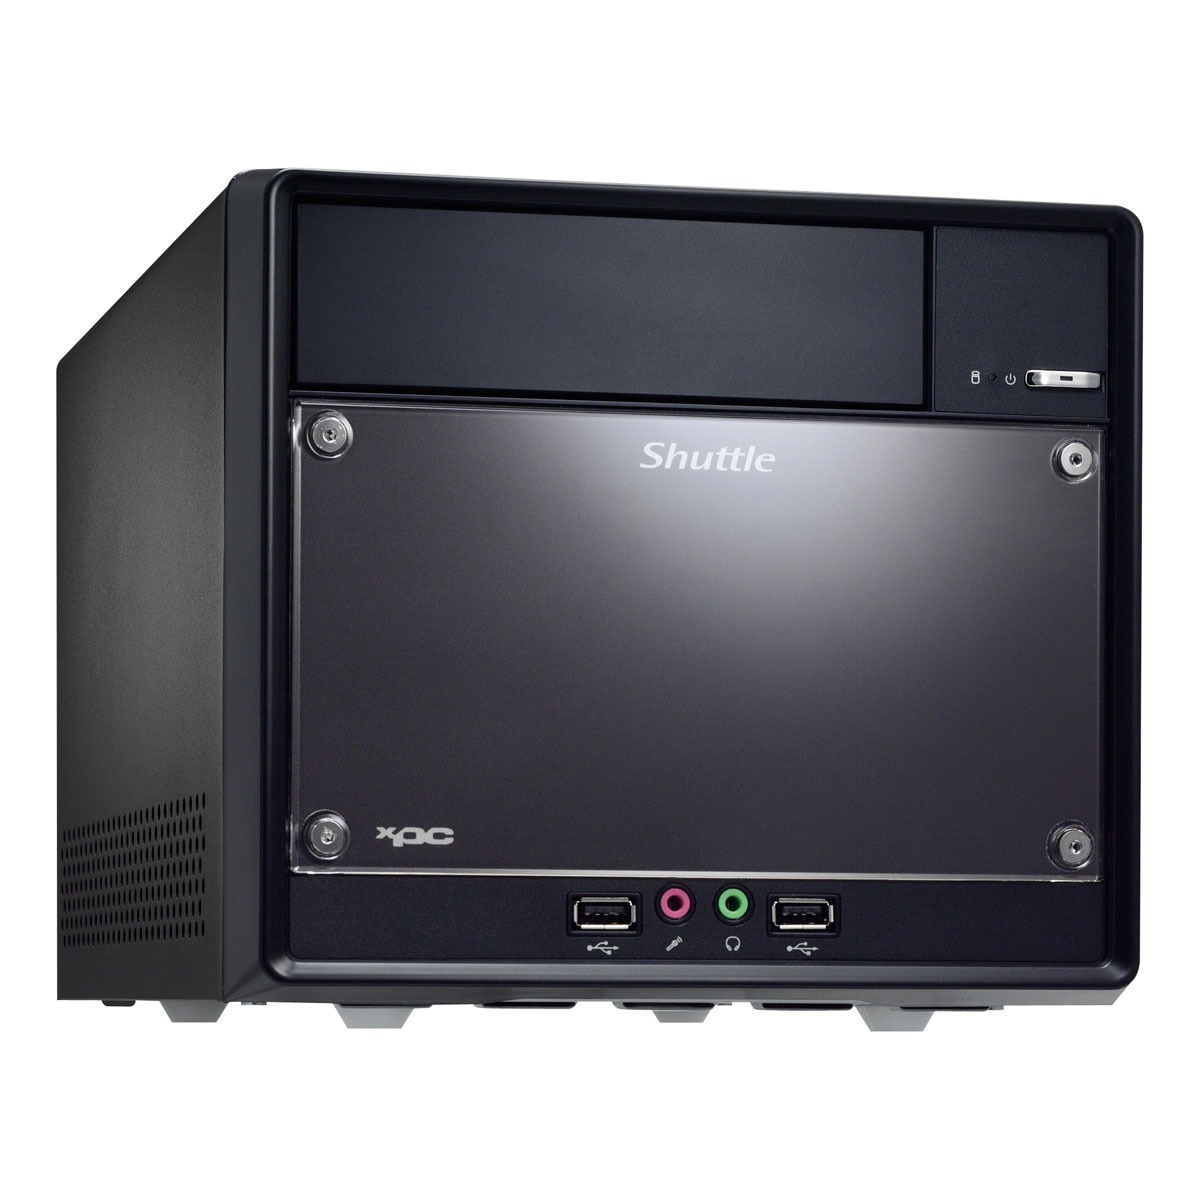 Barebone PC Shuttle SG41J4 Mini-Barebone (Intel G41 Express) Shuttle SG41J4 - Mini-Barebone (Intel G41 Express) - (coloris Noir)